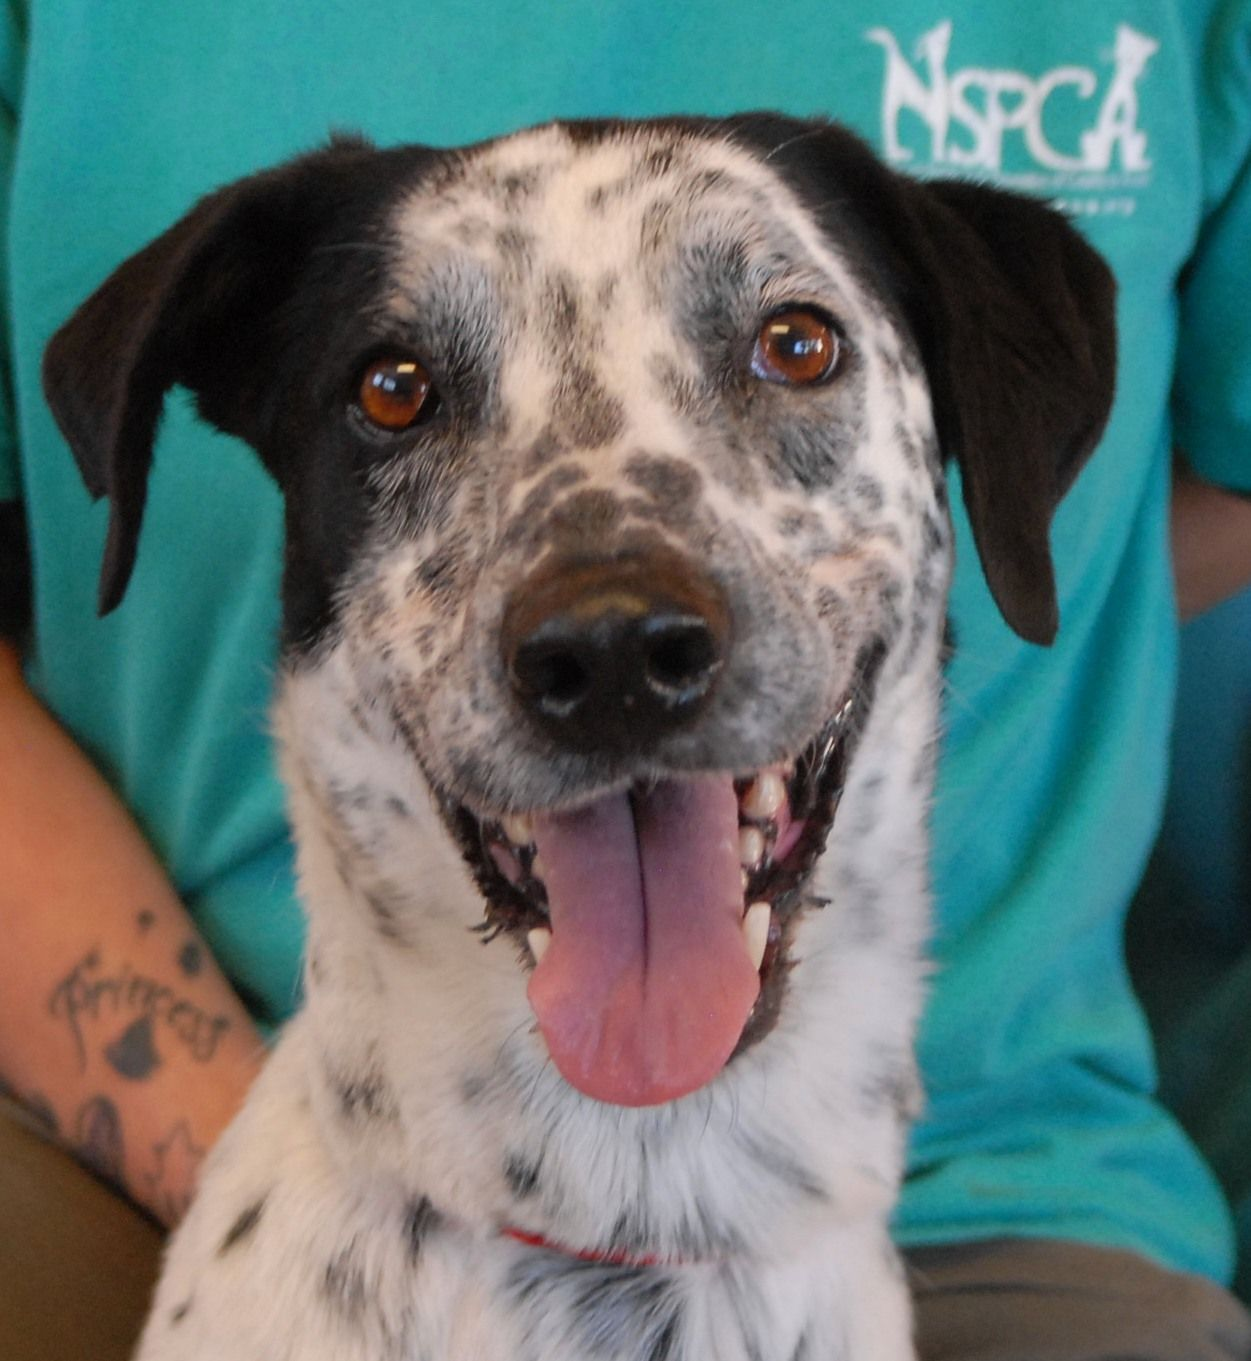 Reno A Pointer X Rescued From Near Starvation The Dangers Are Behind Me And I See Beautiful Days Ahead Animal Shelter Quotes Dog Crate Crate Training Puppy